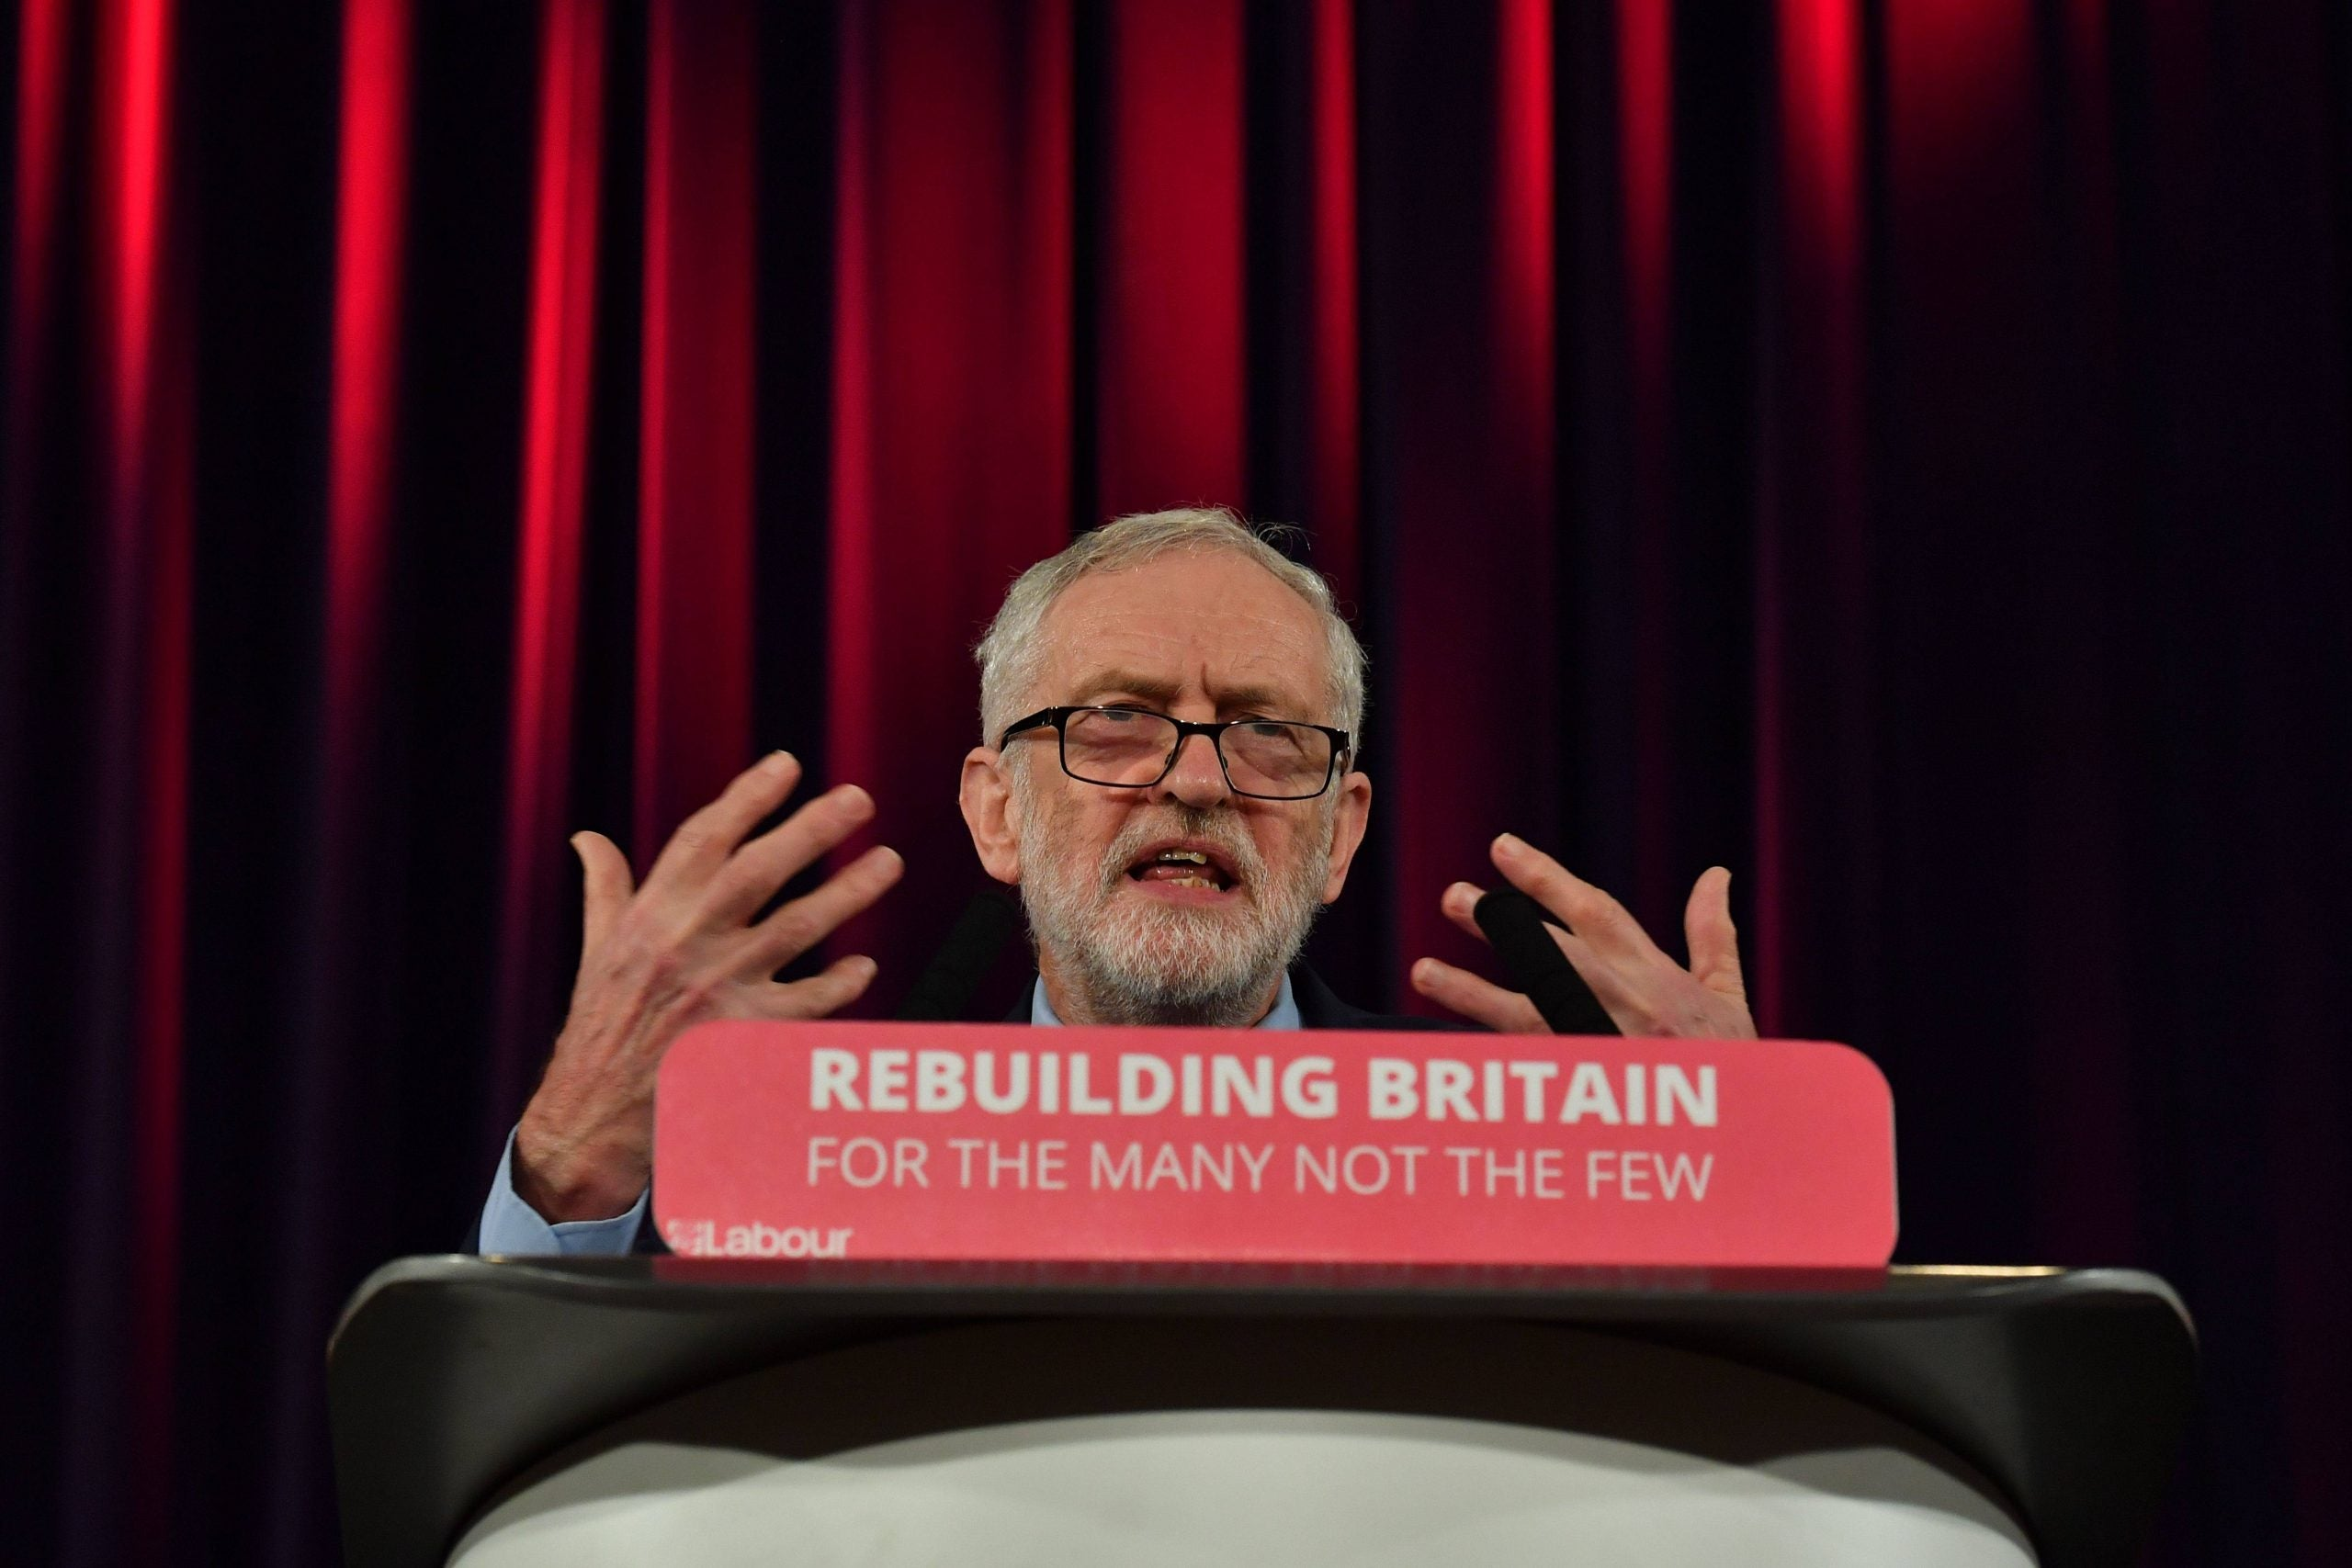 Labour cannot ride the Brexit wave to socialism, it must fight the nationalist right